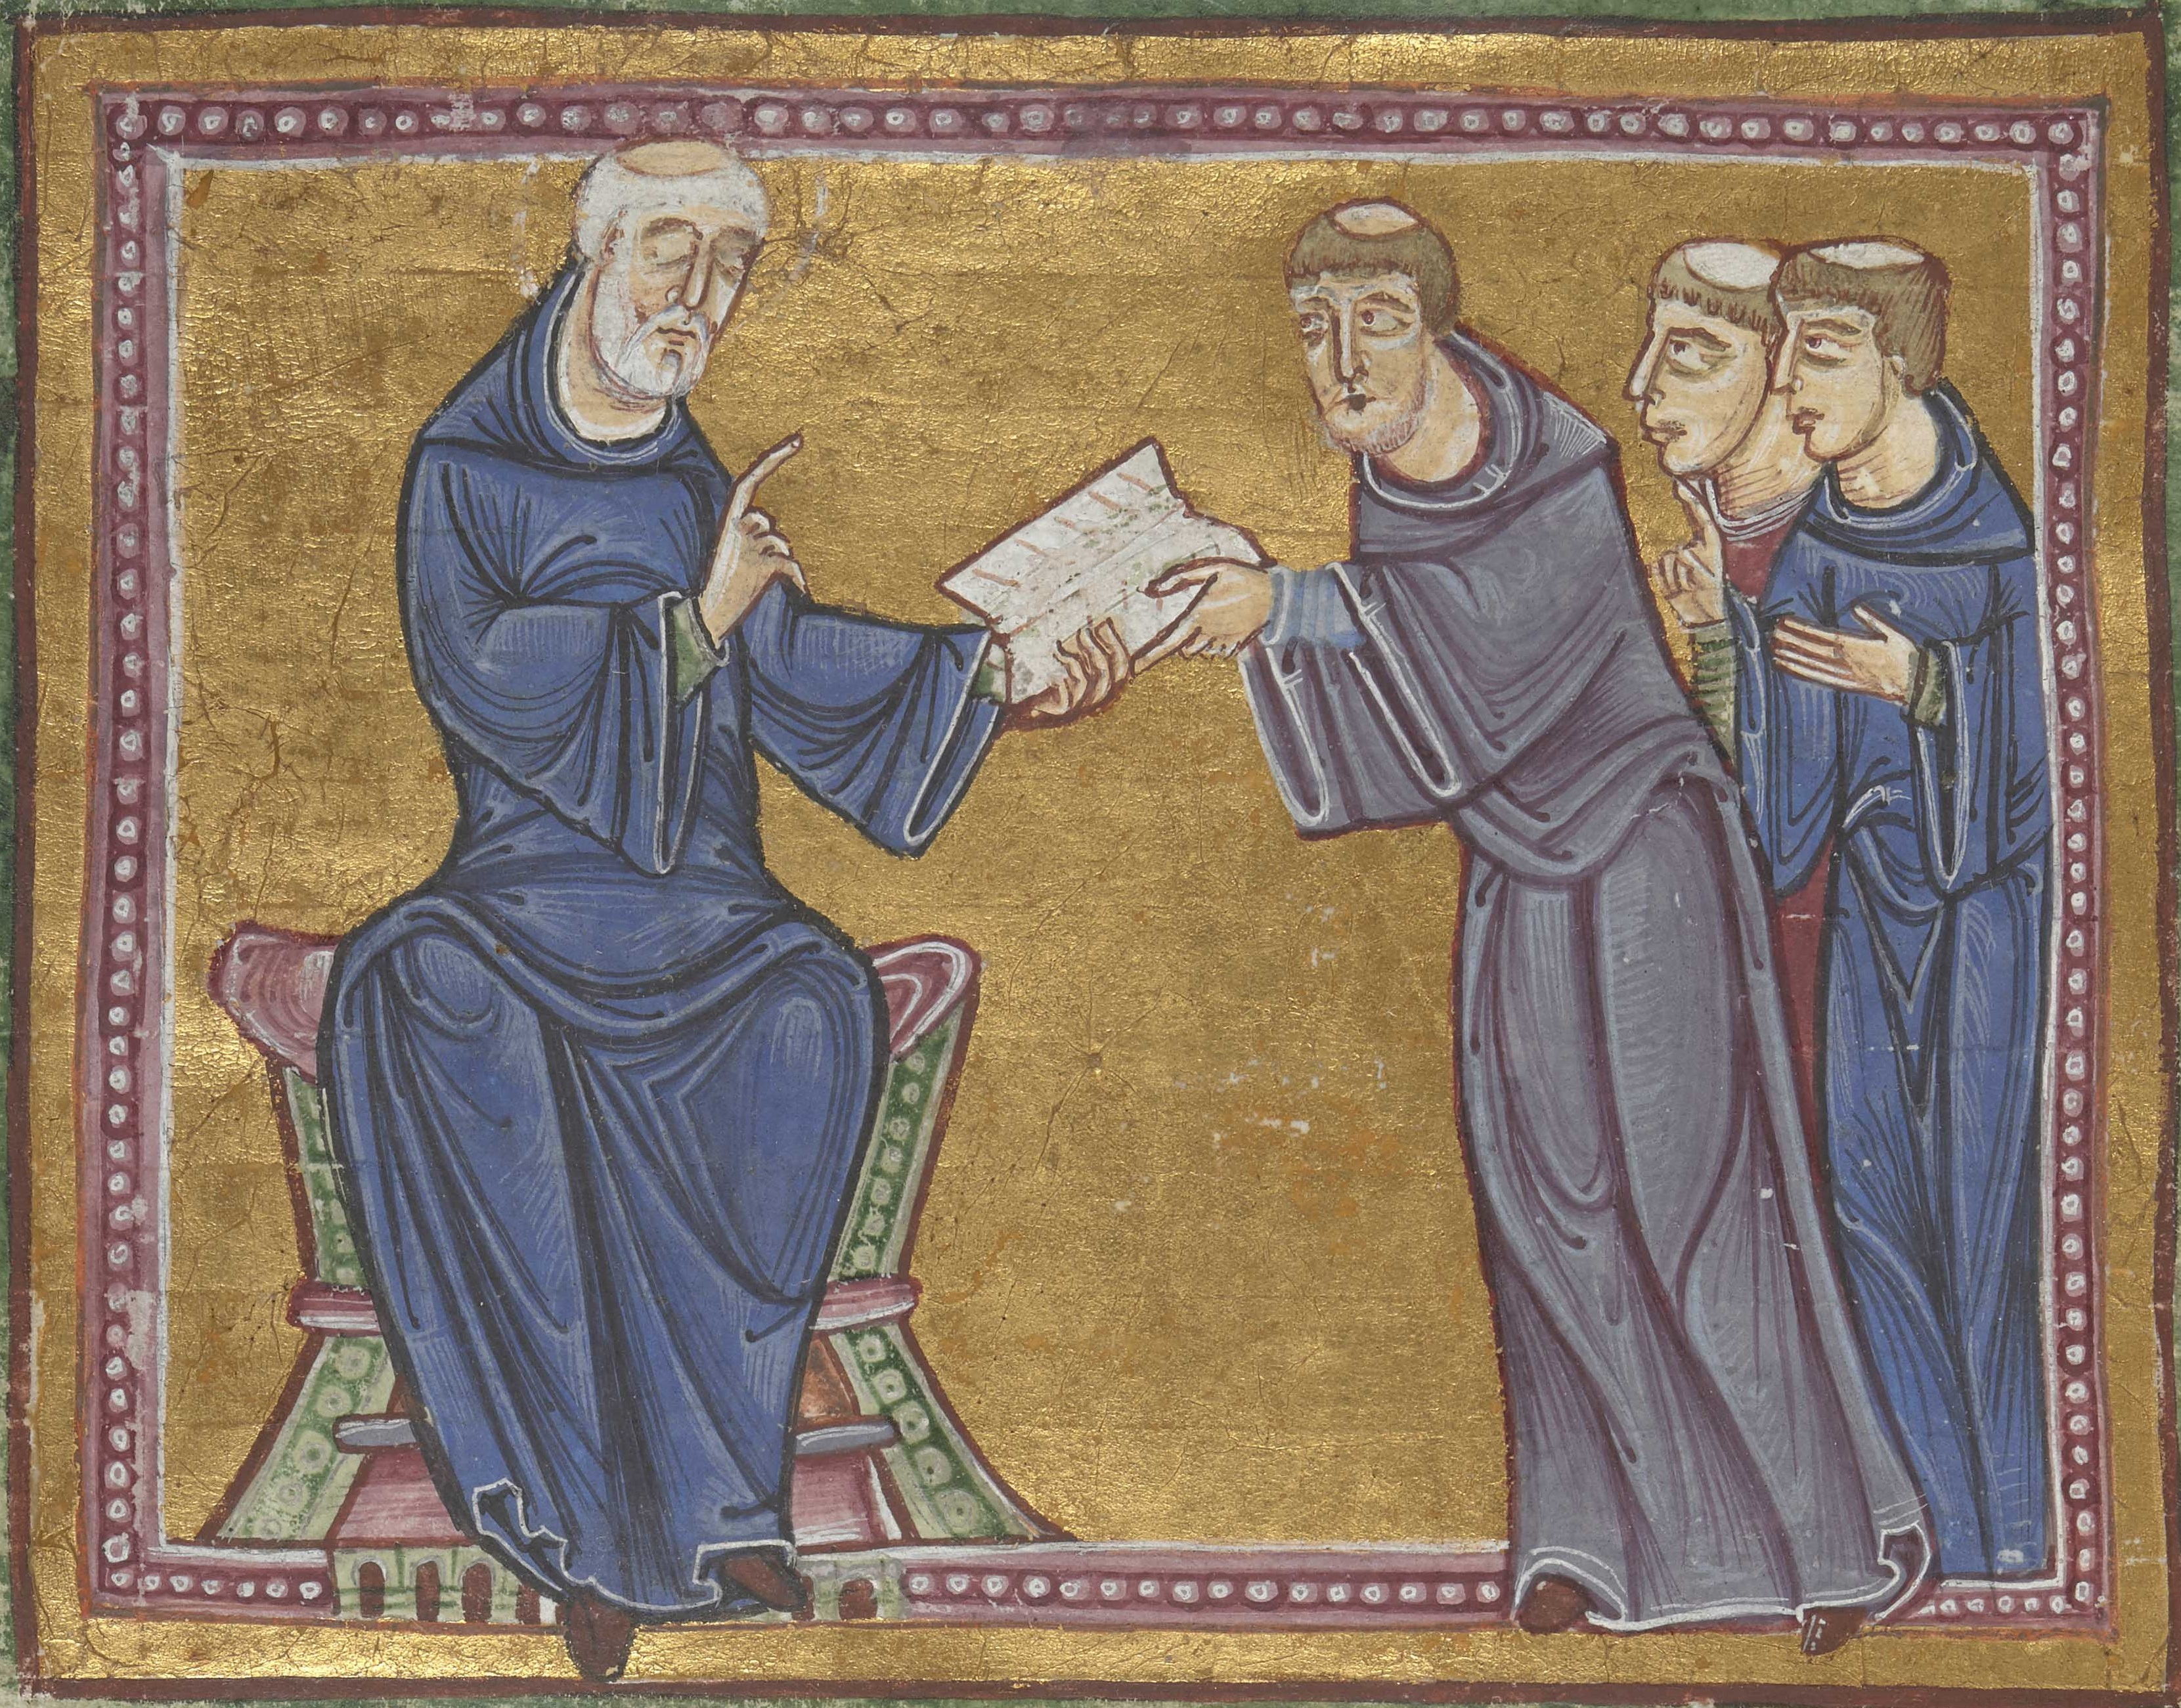 Medieval manuscript picture of St Benedict giving the Rule to St Maurus